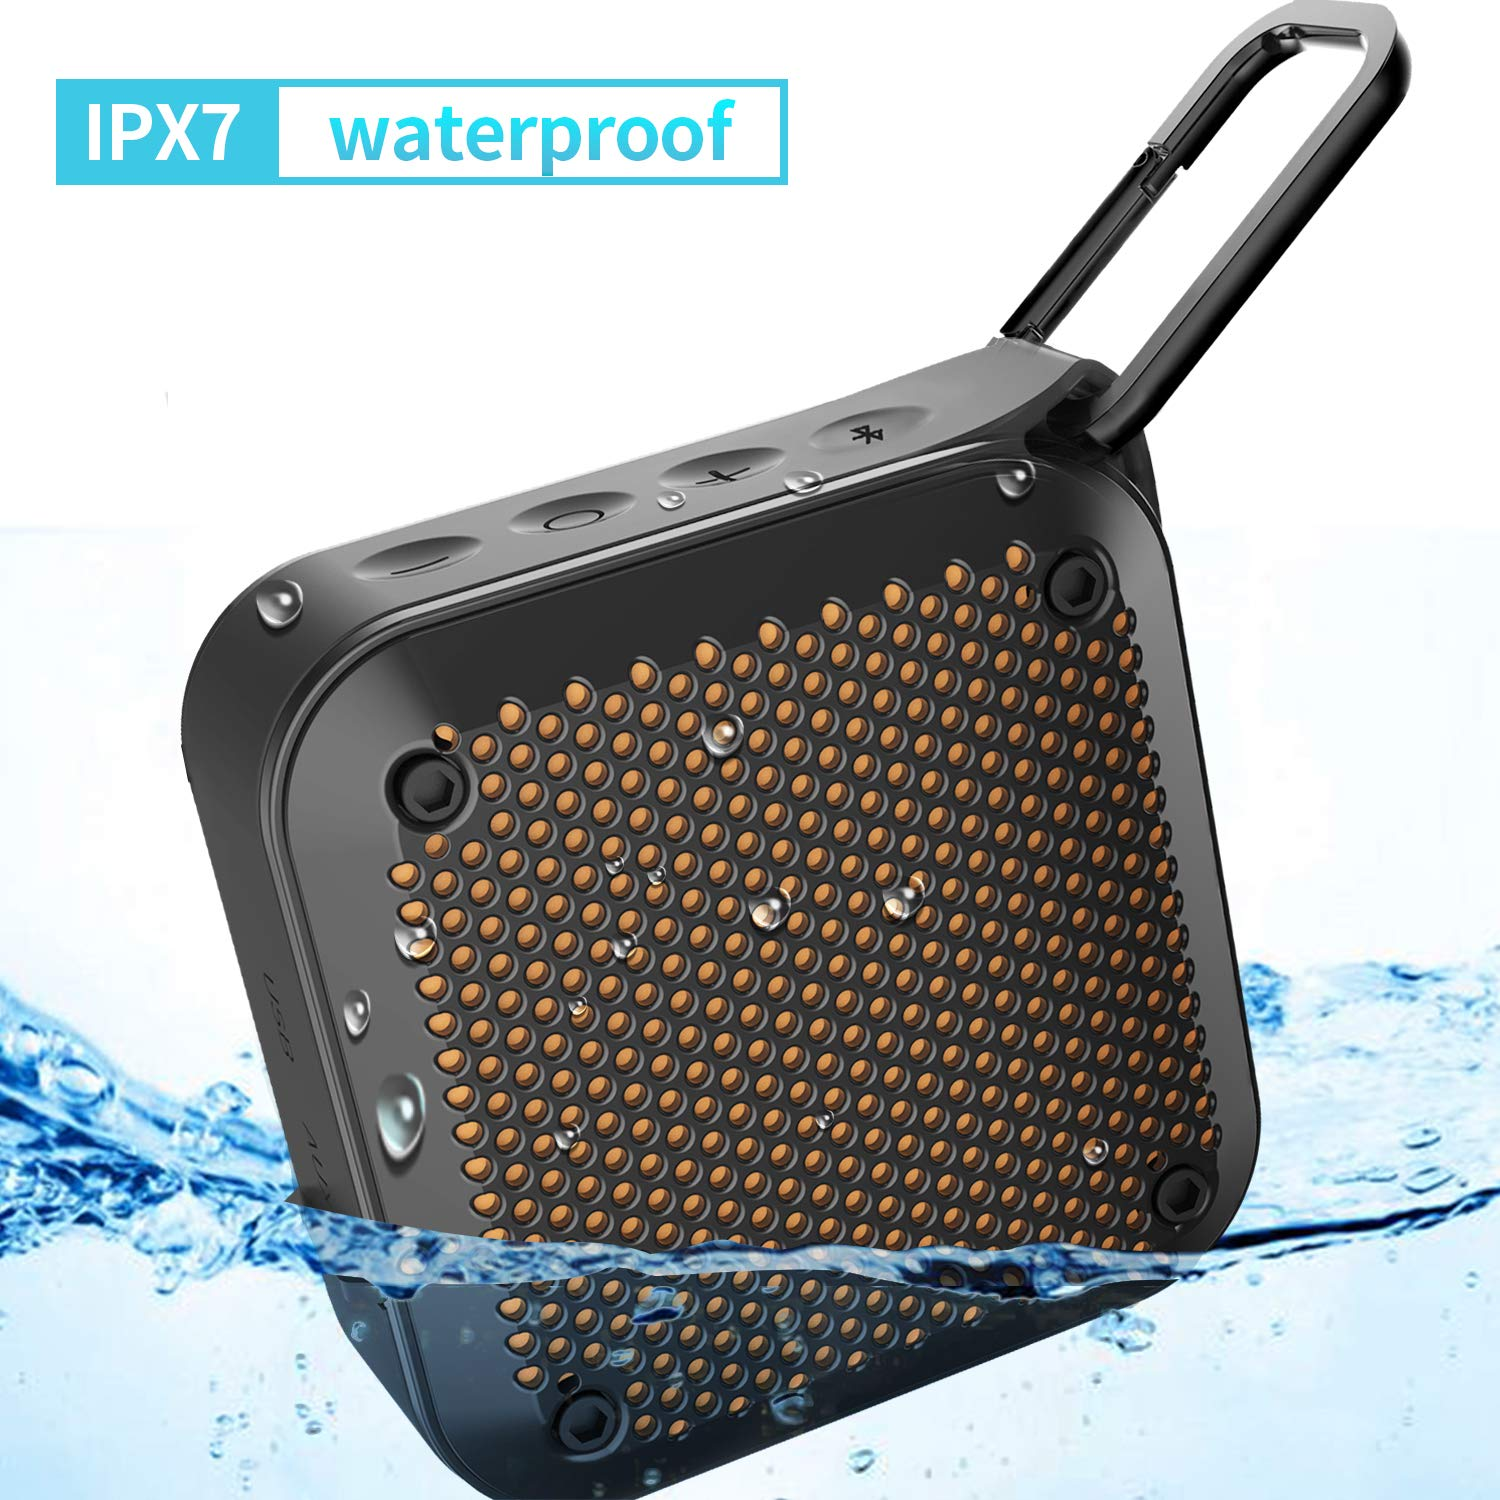 Portable Wireless Bluetooth Speaker Waterproof - LEZII (2018 New) Waterproof IPX7 Dustproof Shockproof Wireless Speaker 8-Hour Playtime Built-in Mic AUX and TF Card Input for Shower Christmas Gifts Kayaking THECO BT526